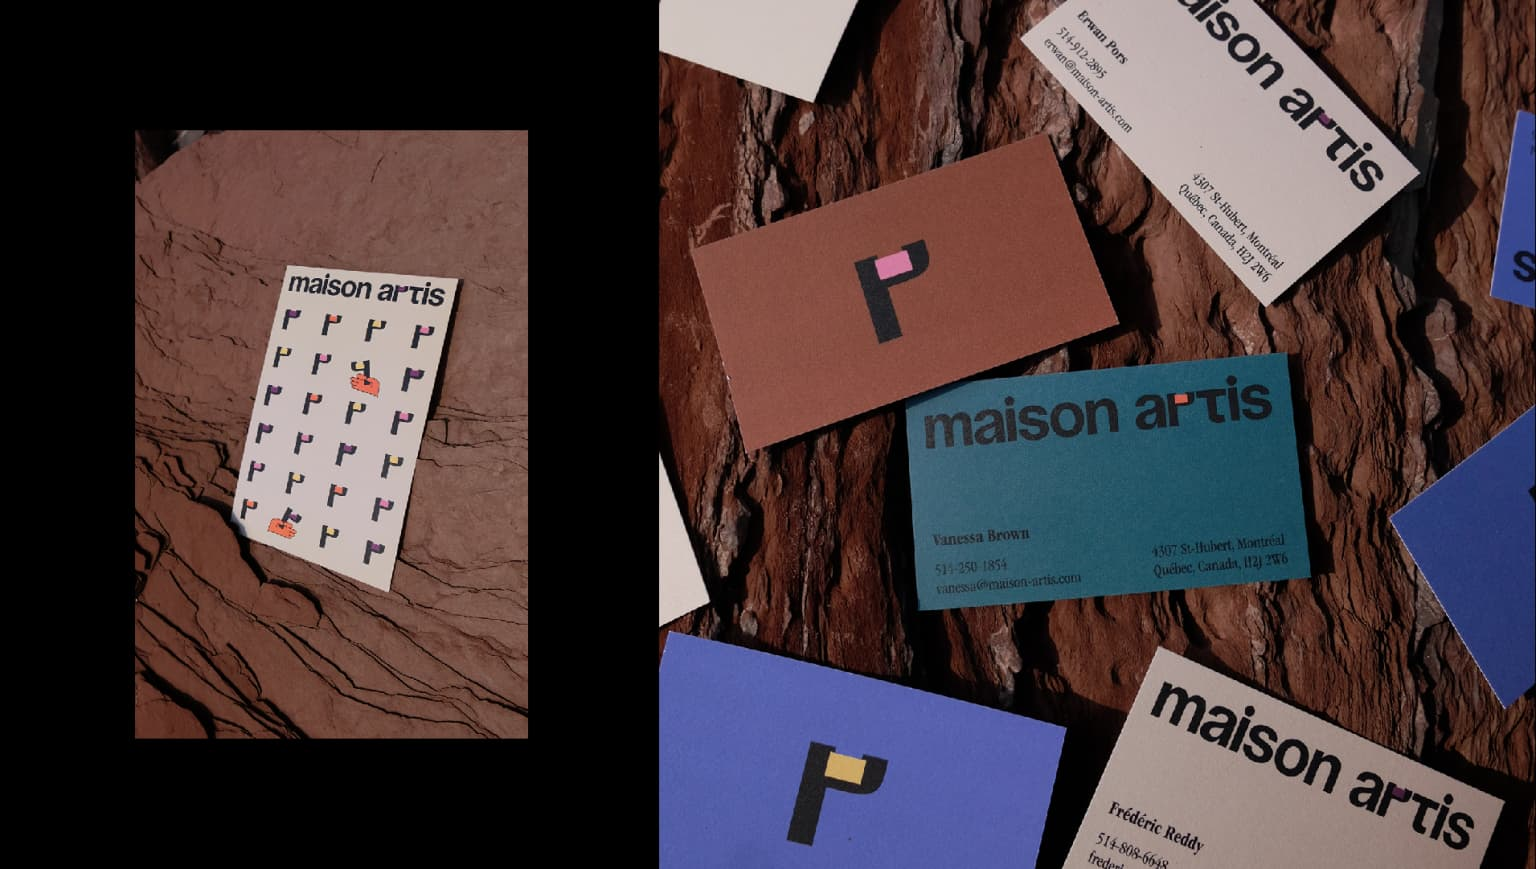 Maison Artis - Identity & Creative direction